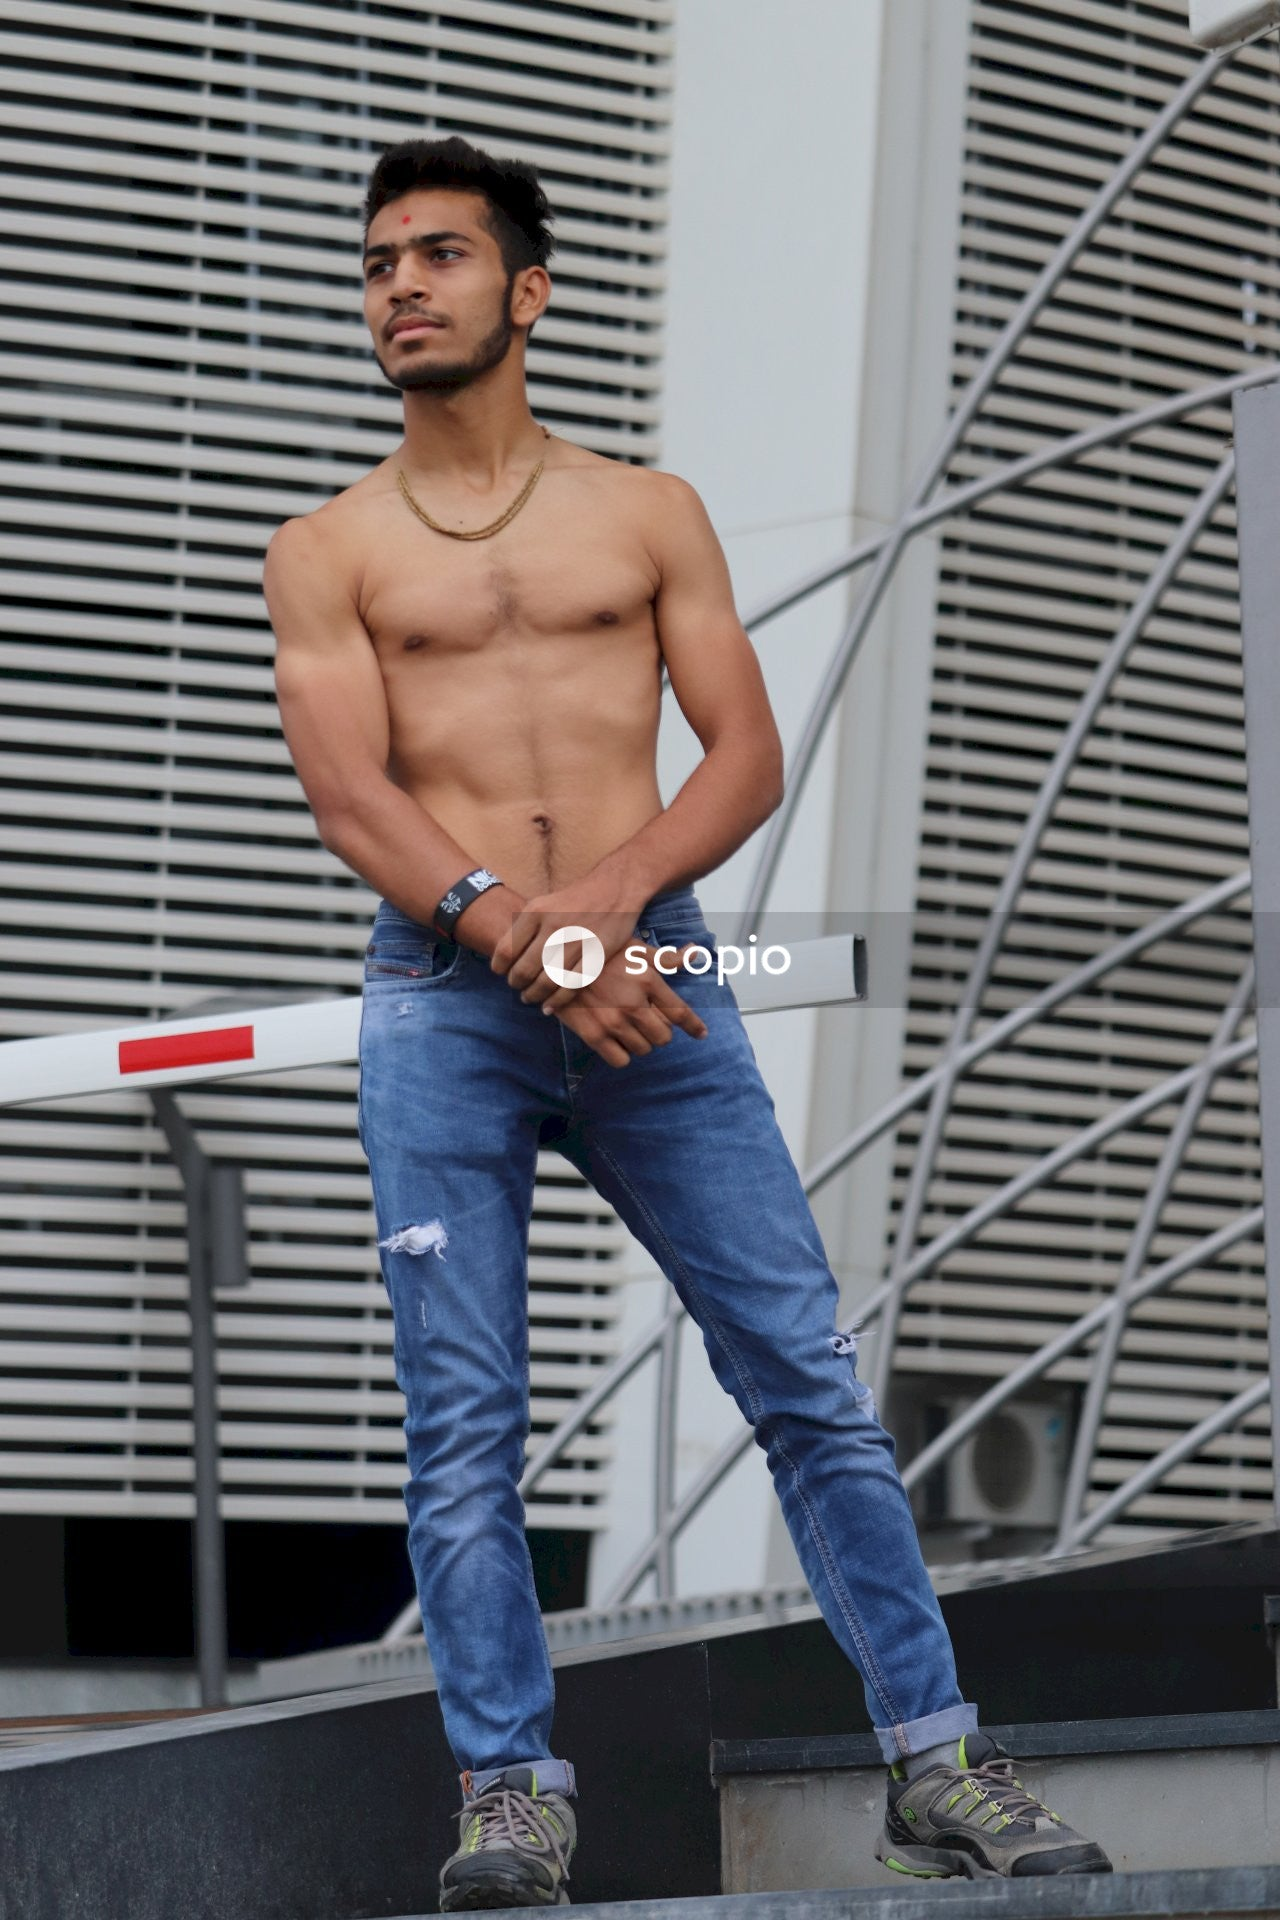 Topless man in blue denim jeans standing near white metal fence